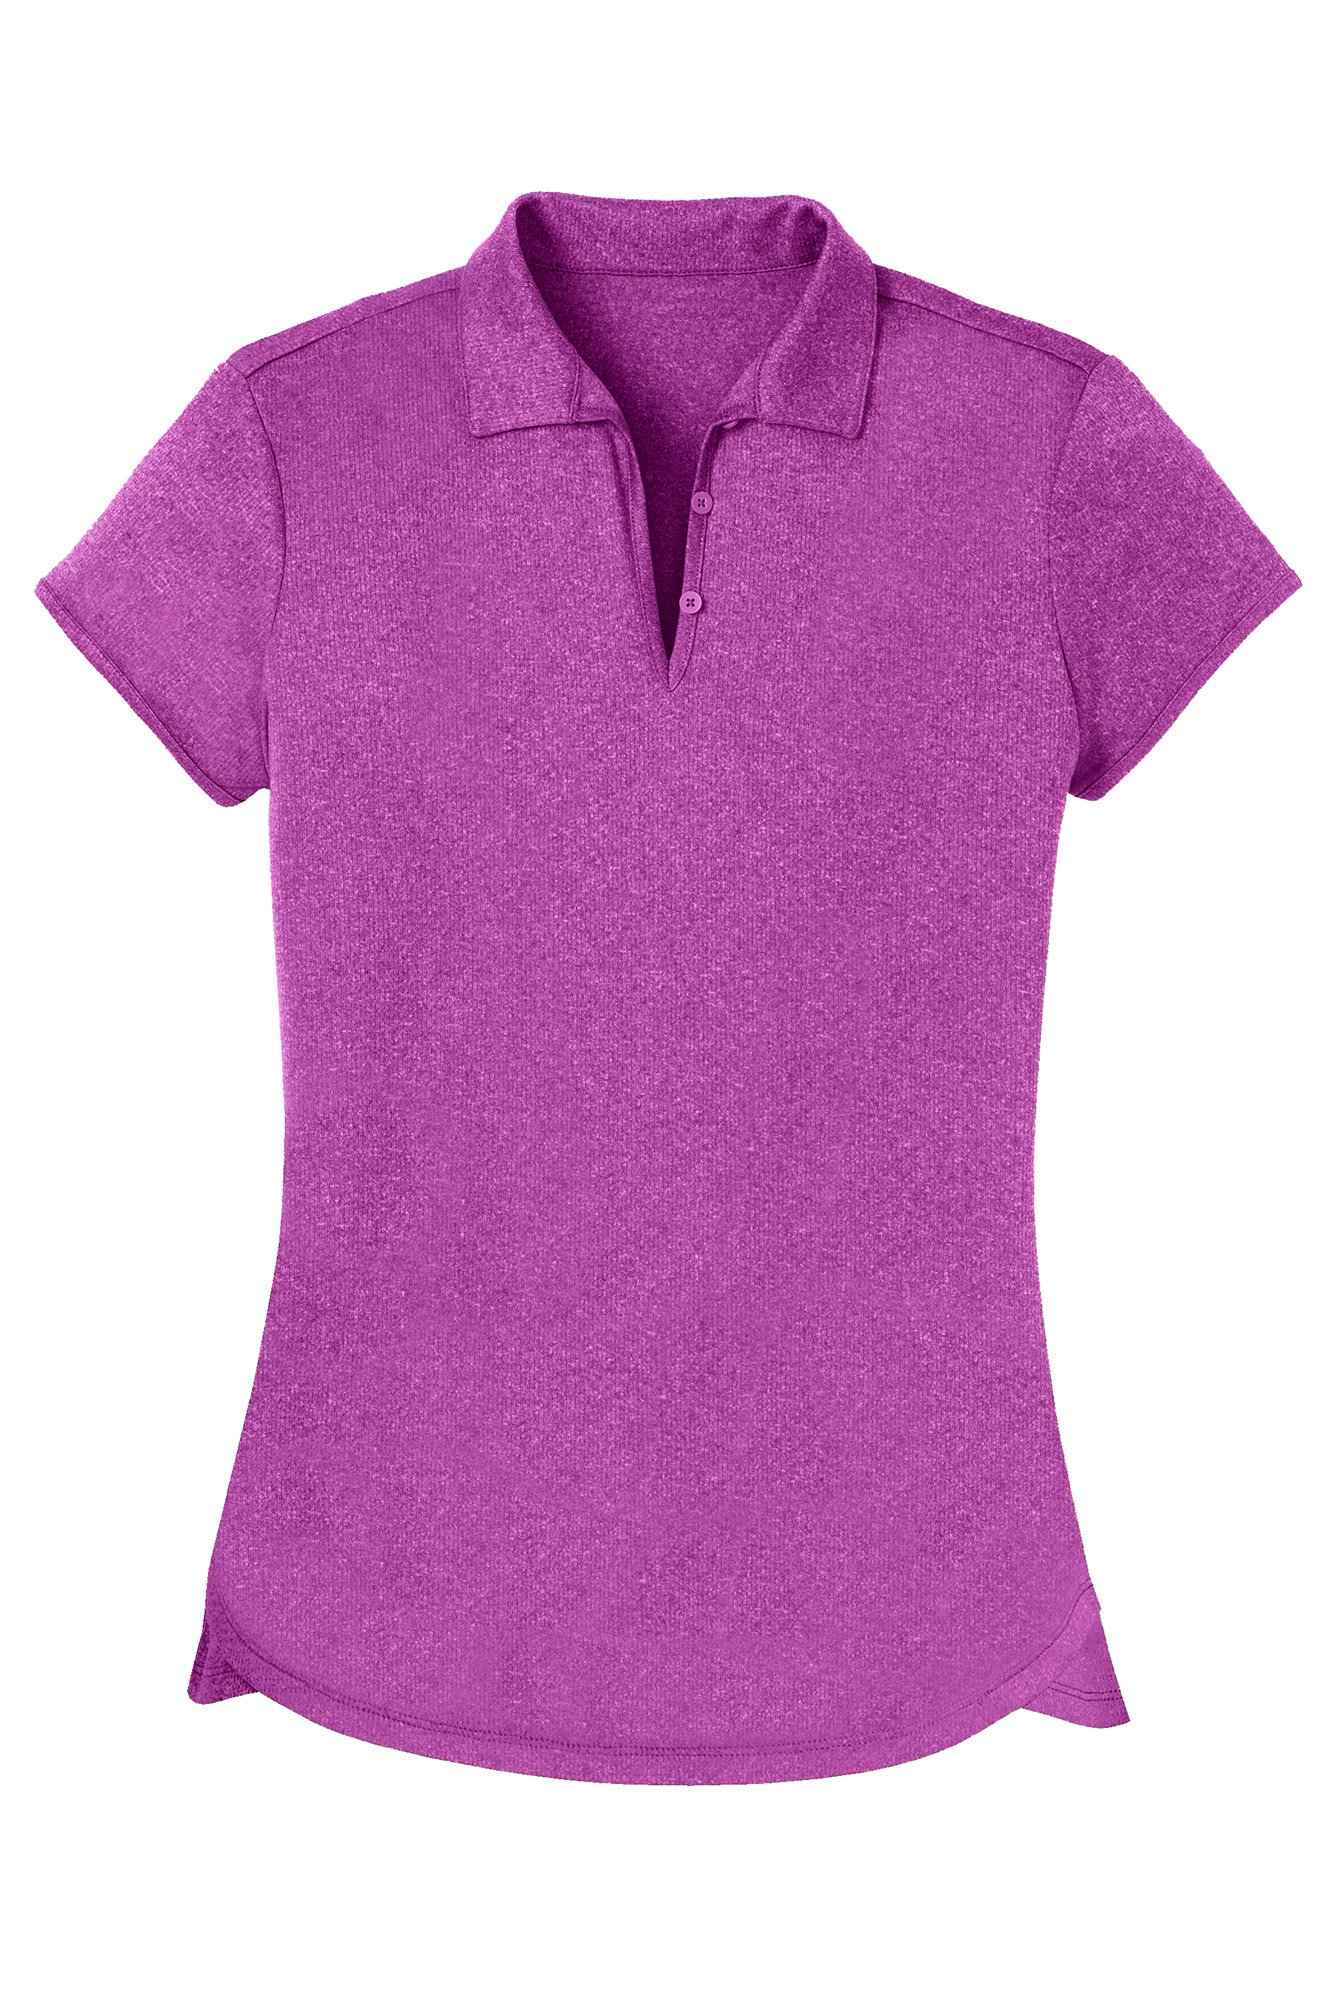 Opna Women's Ladies Moisture Wicking Athletic Golf Polo Shirts Tops & Tees by Opna